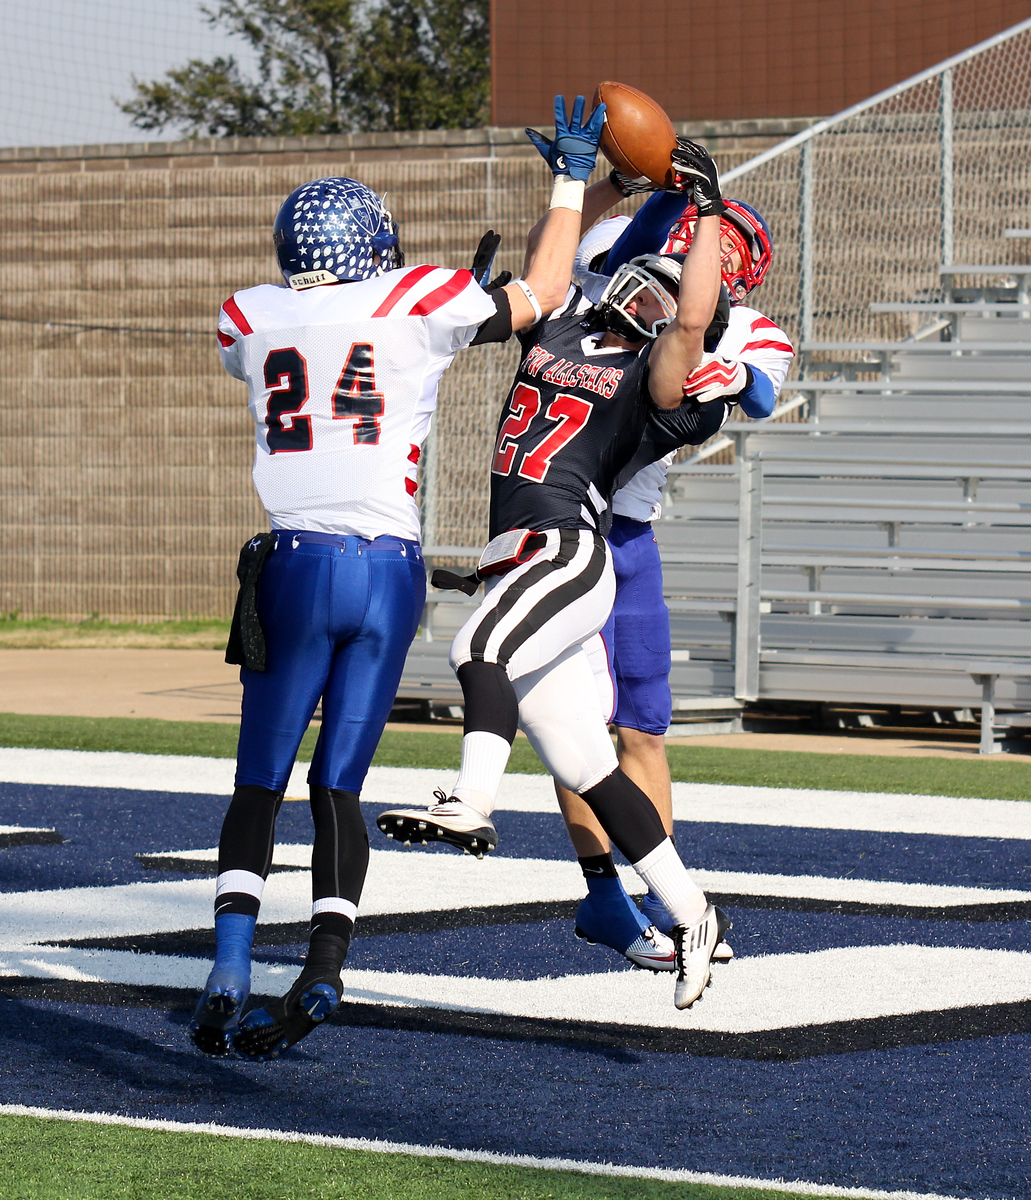 2011 DFW Tom Hillary Football All Star Classic